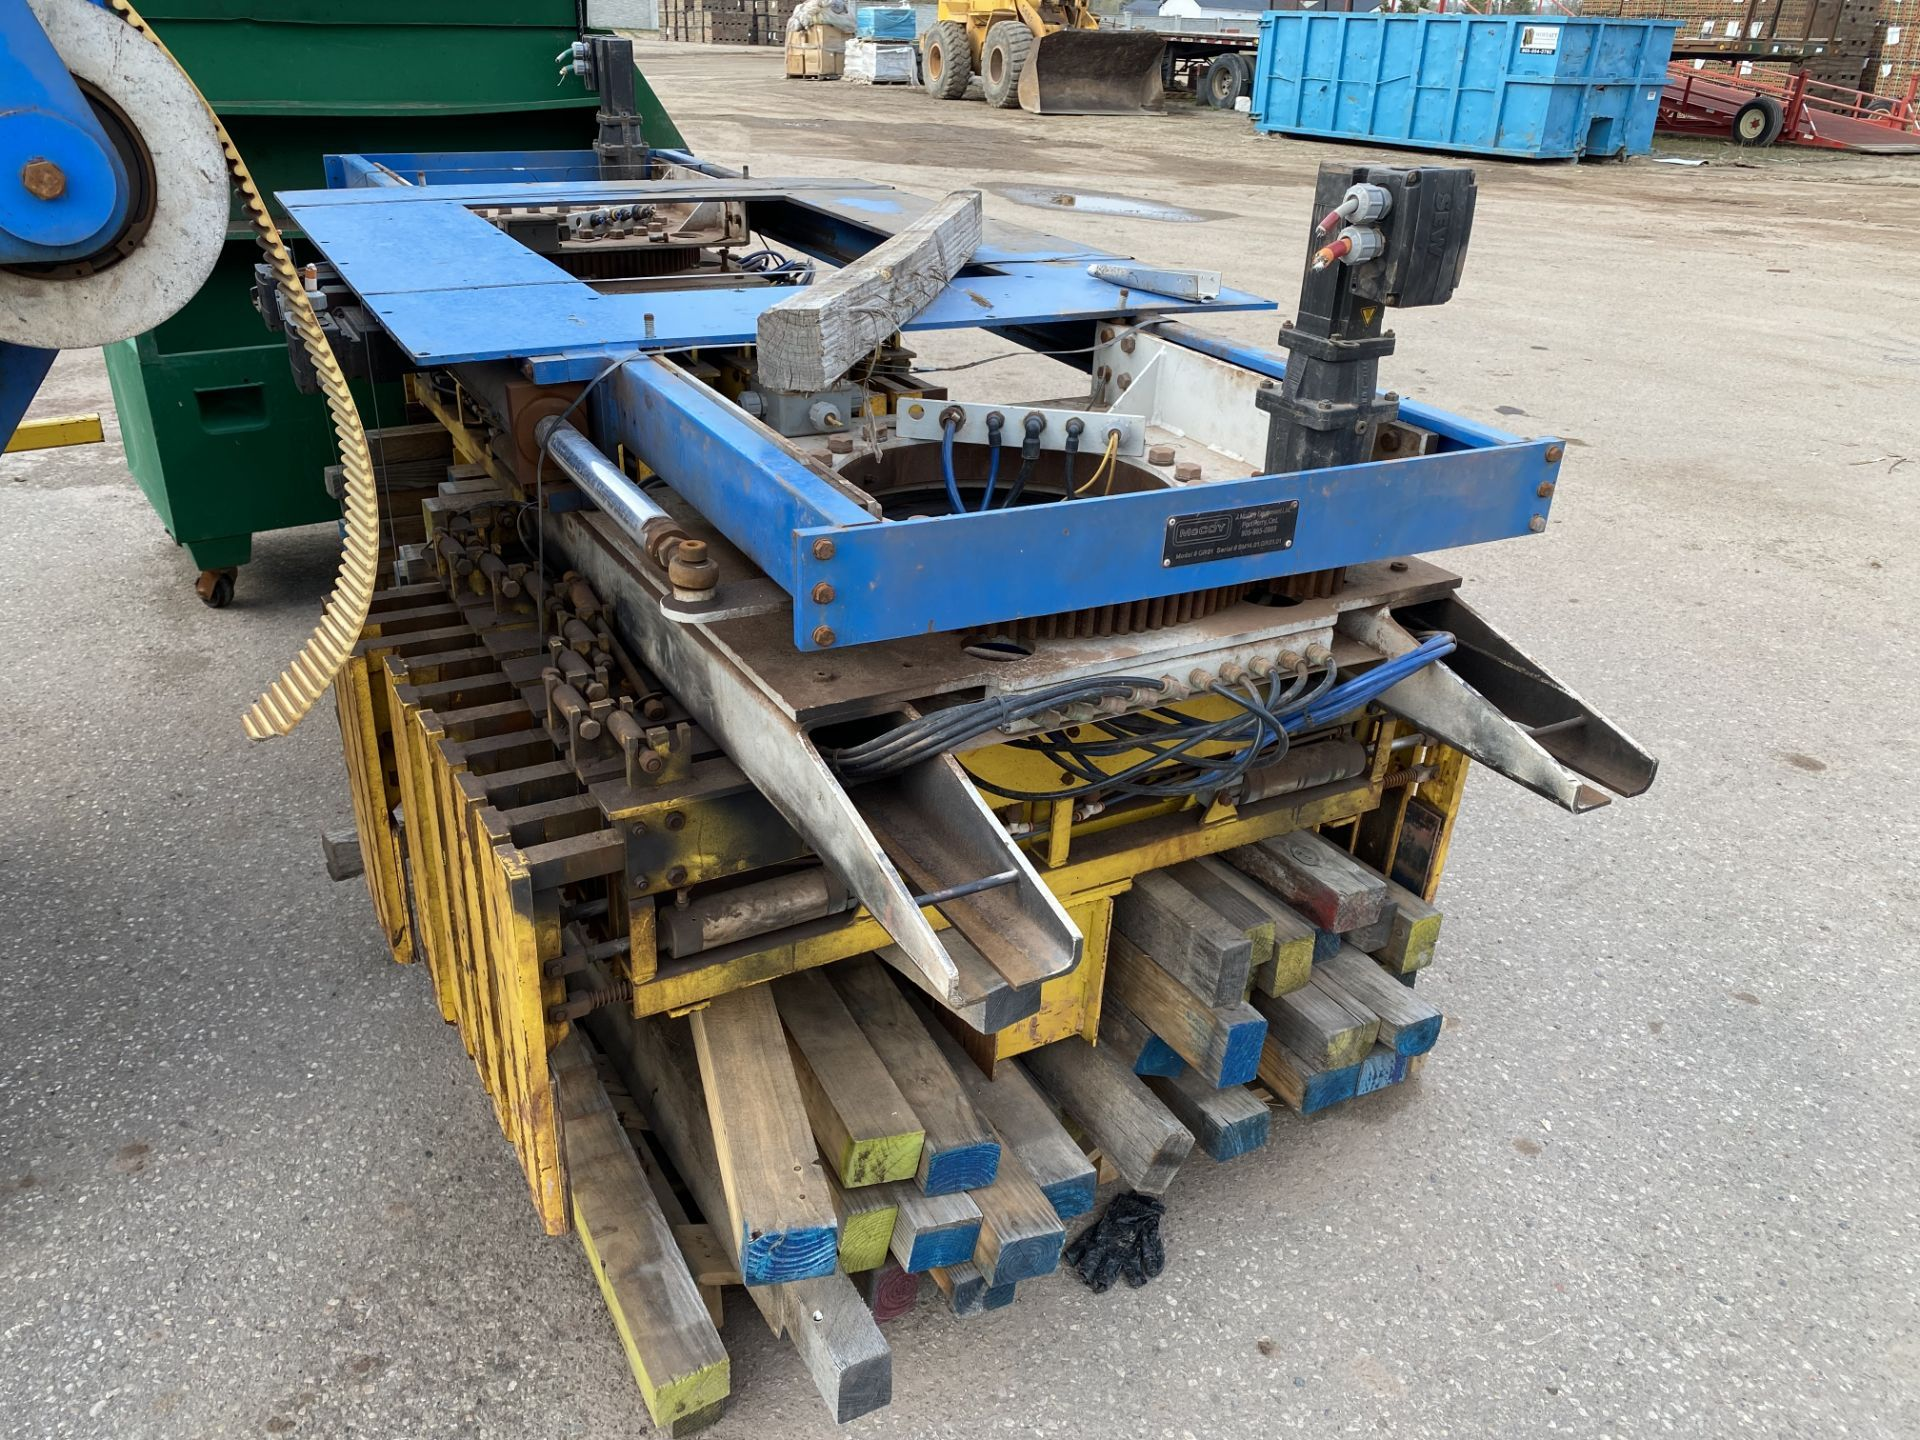 McCoy GR01 GANTRY STYLE BRICK / BLOCK CLAMP UNIT made in 2016 - Image 7 of 12